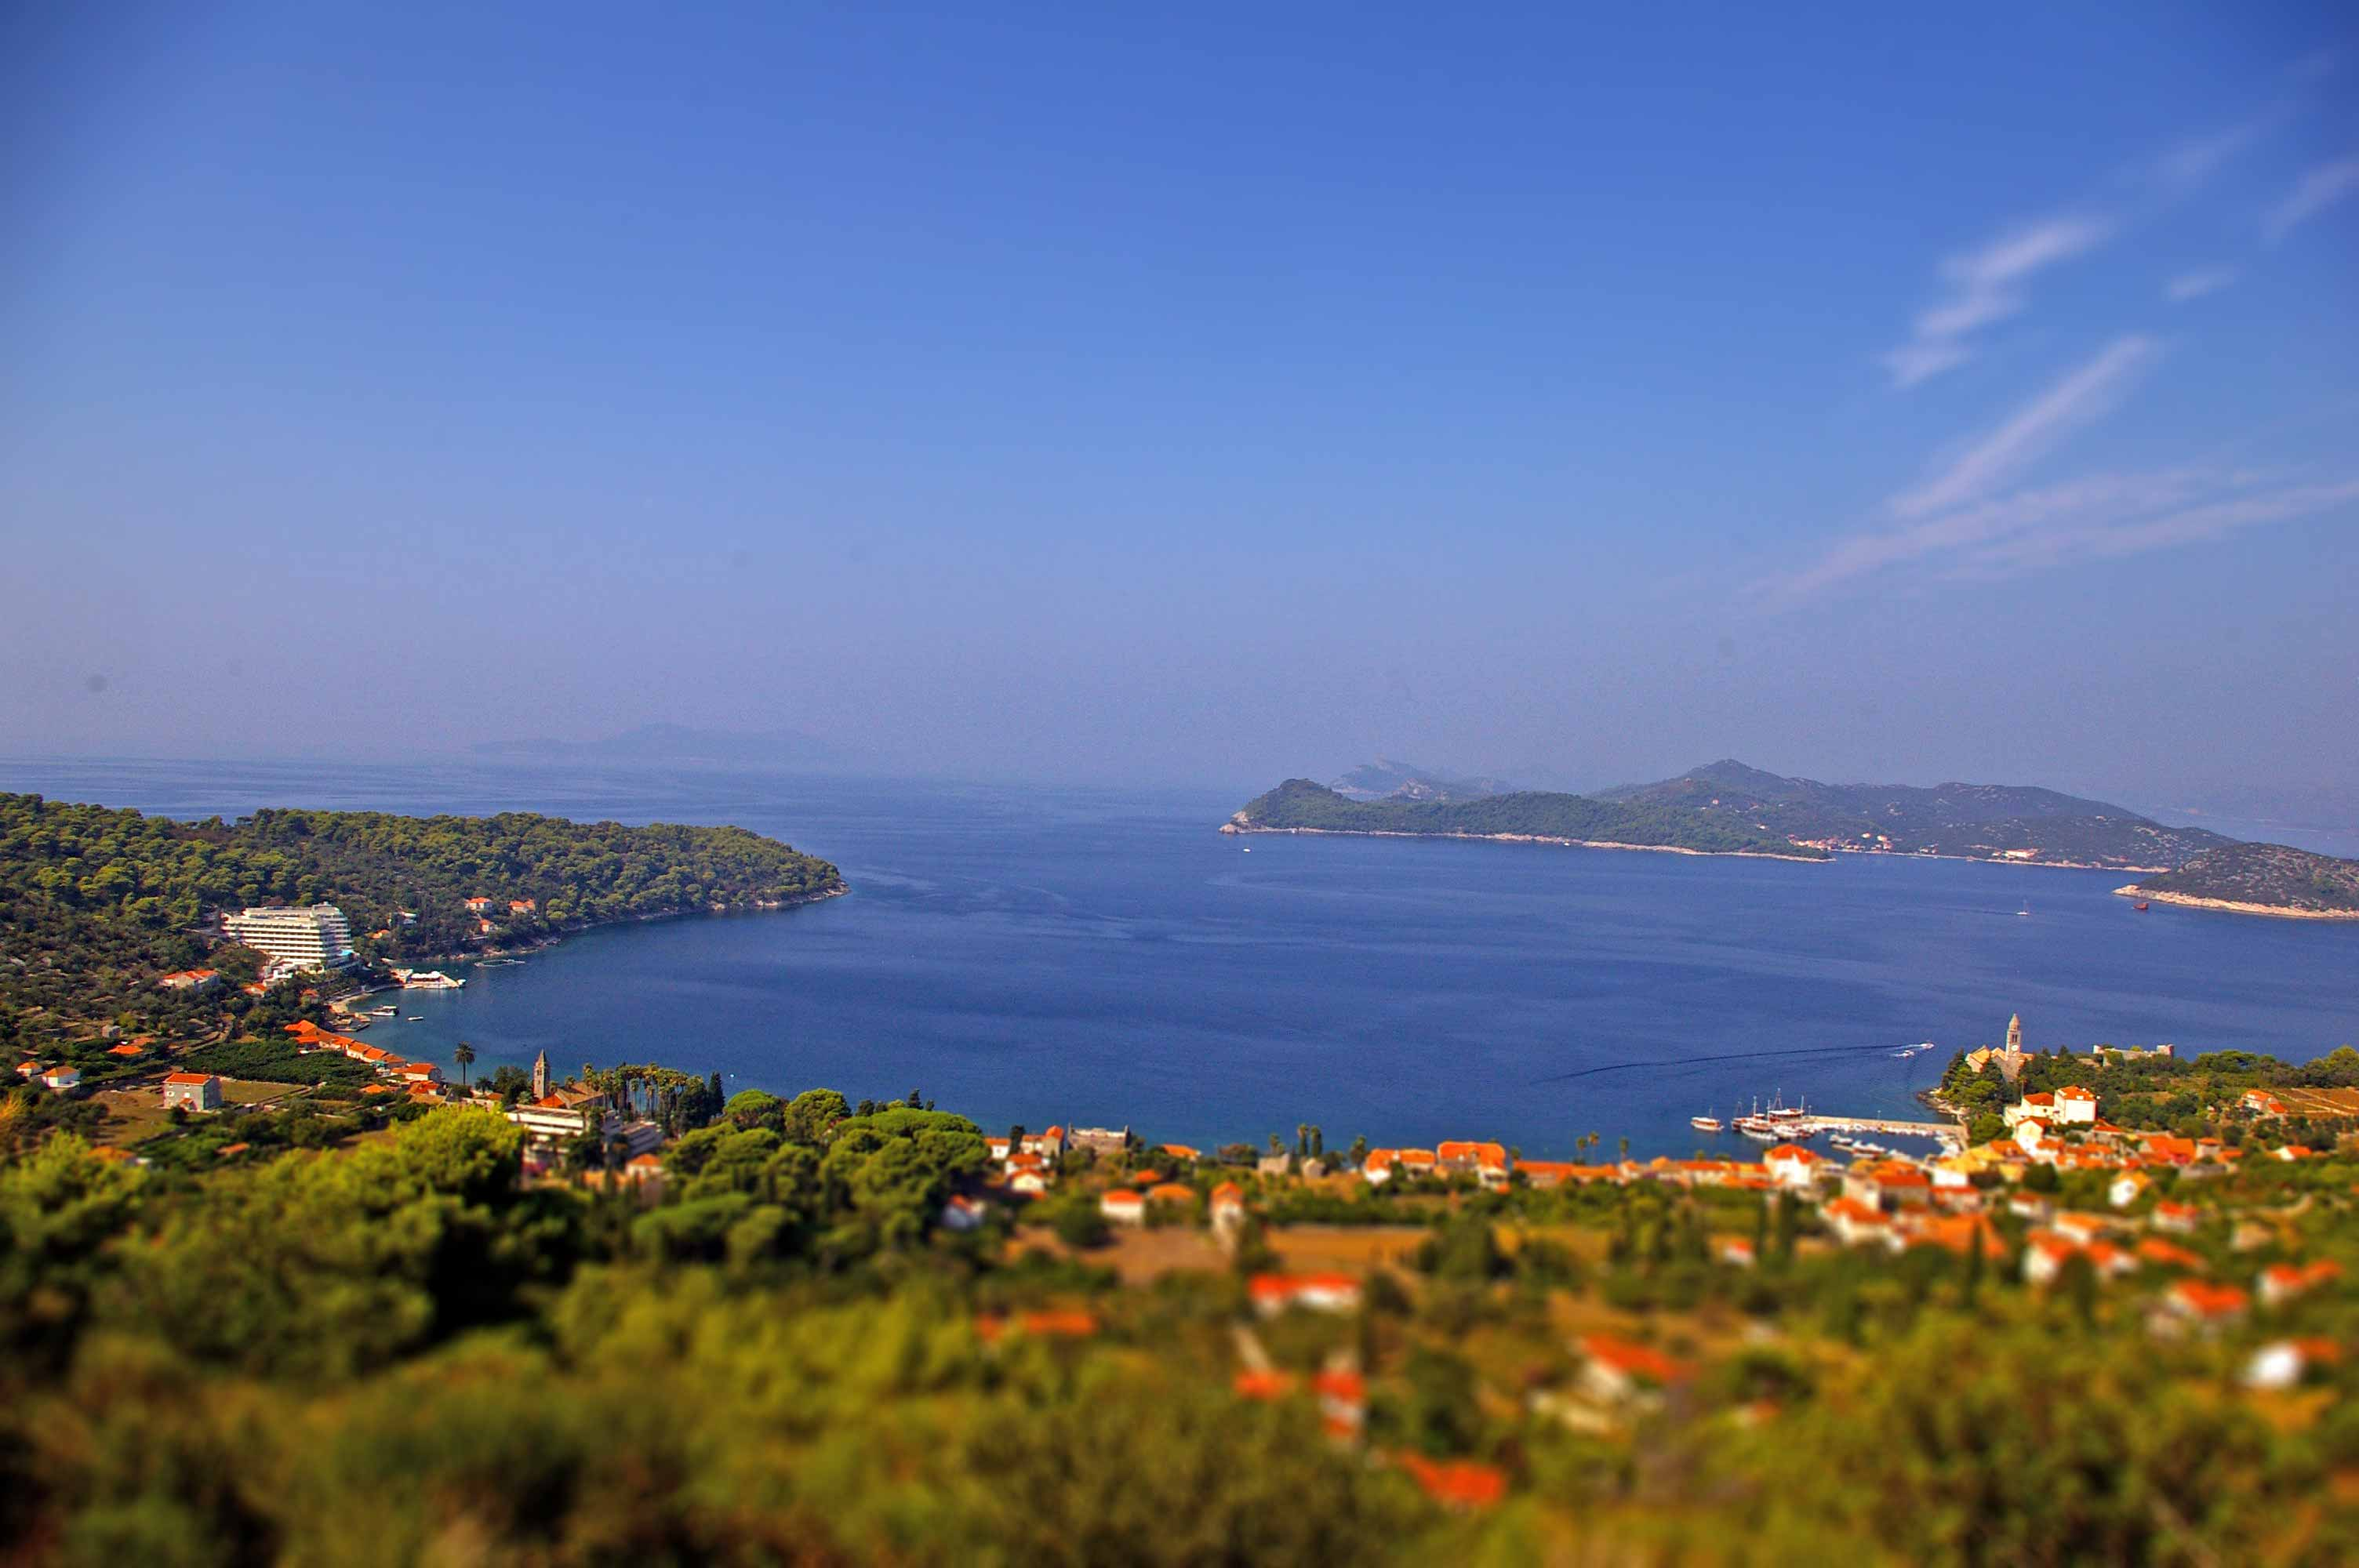 -images-excursions-elaphite-islands-speed-boat-excursion-lopud-panorama.jpg